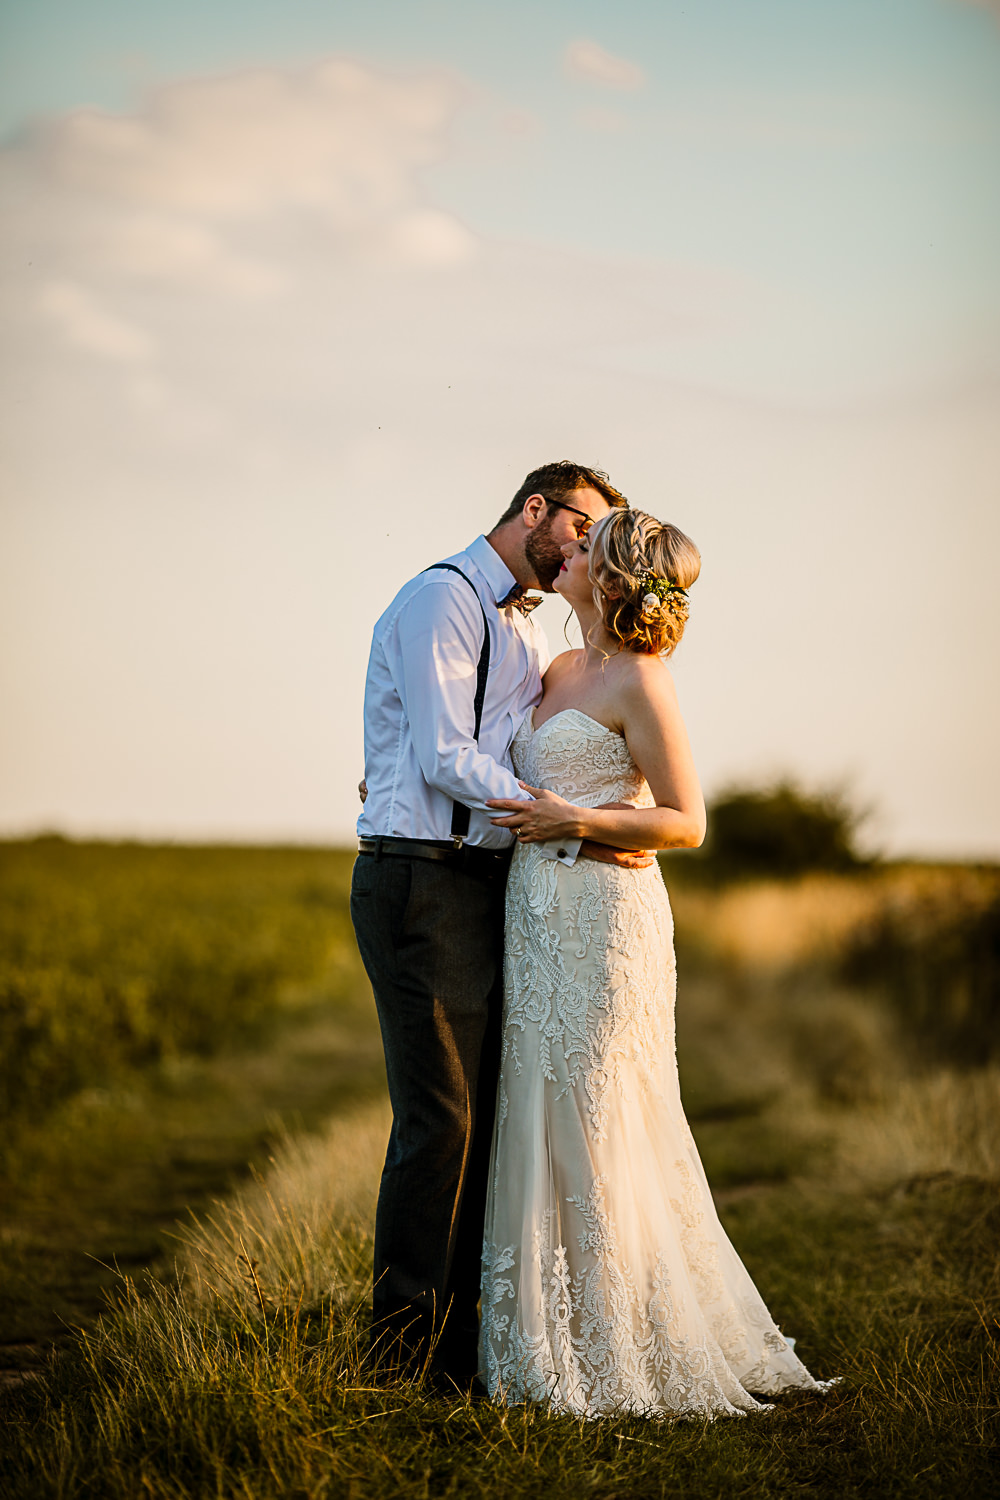 Bride Bridal Dress Gown Sweetheart Neckline Lace Braided Up Do Plait Bow Tie Braces Groom Crab and Lobster Wedding Hayley Baxter Photography